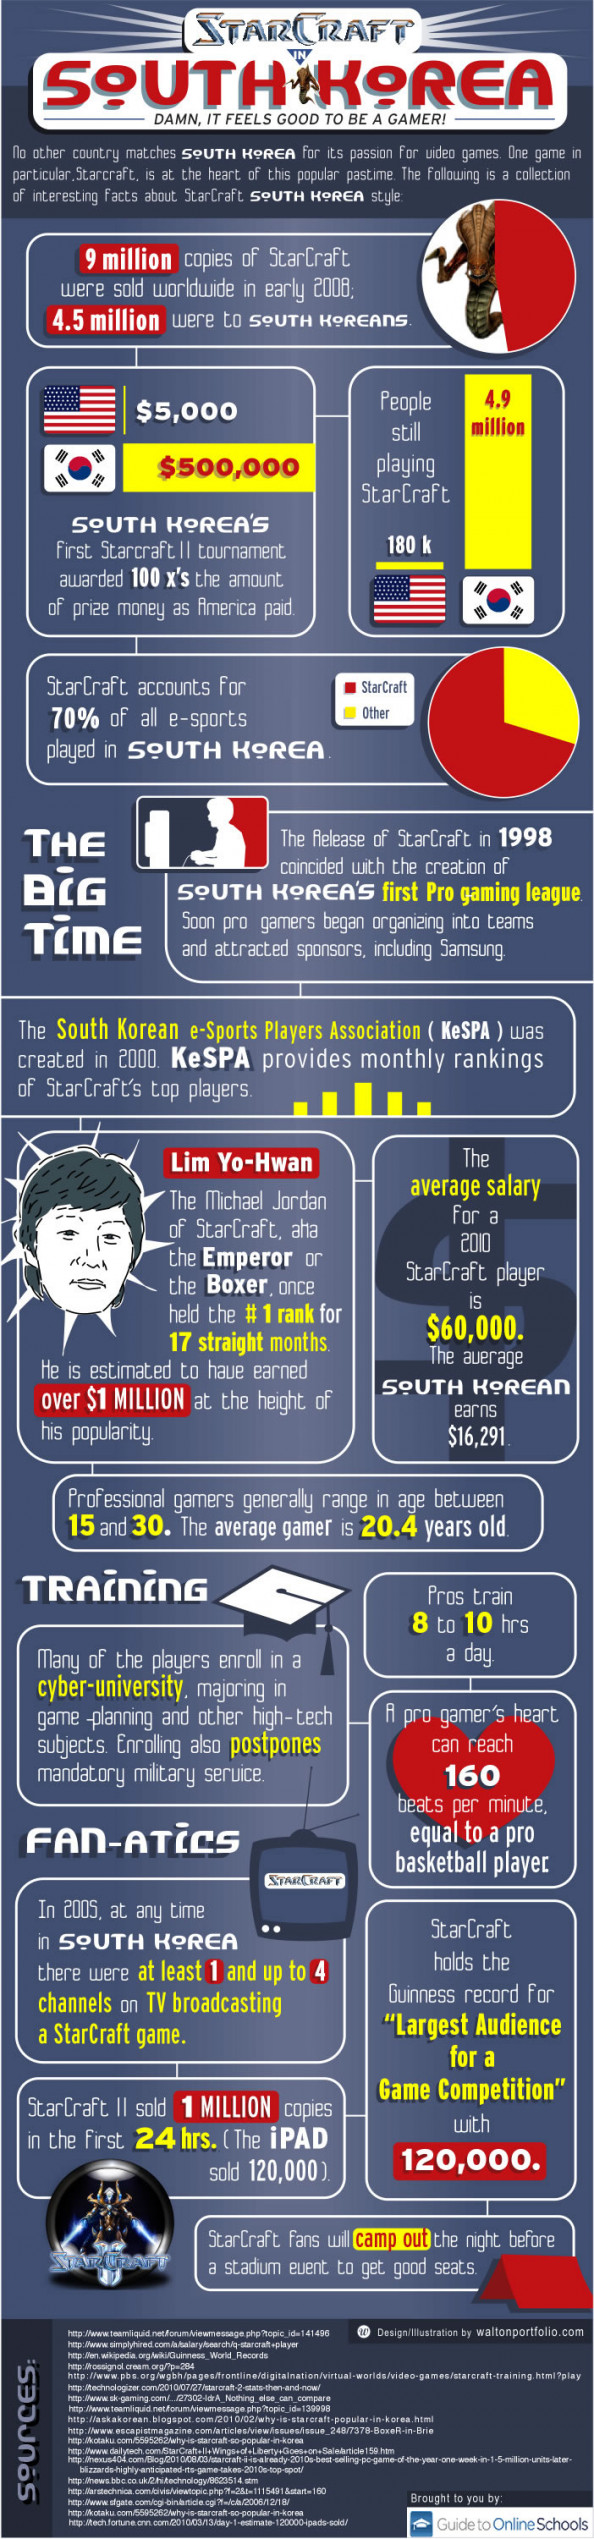 StarCraft in South Korea Infographic